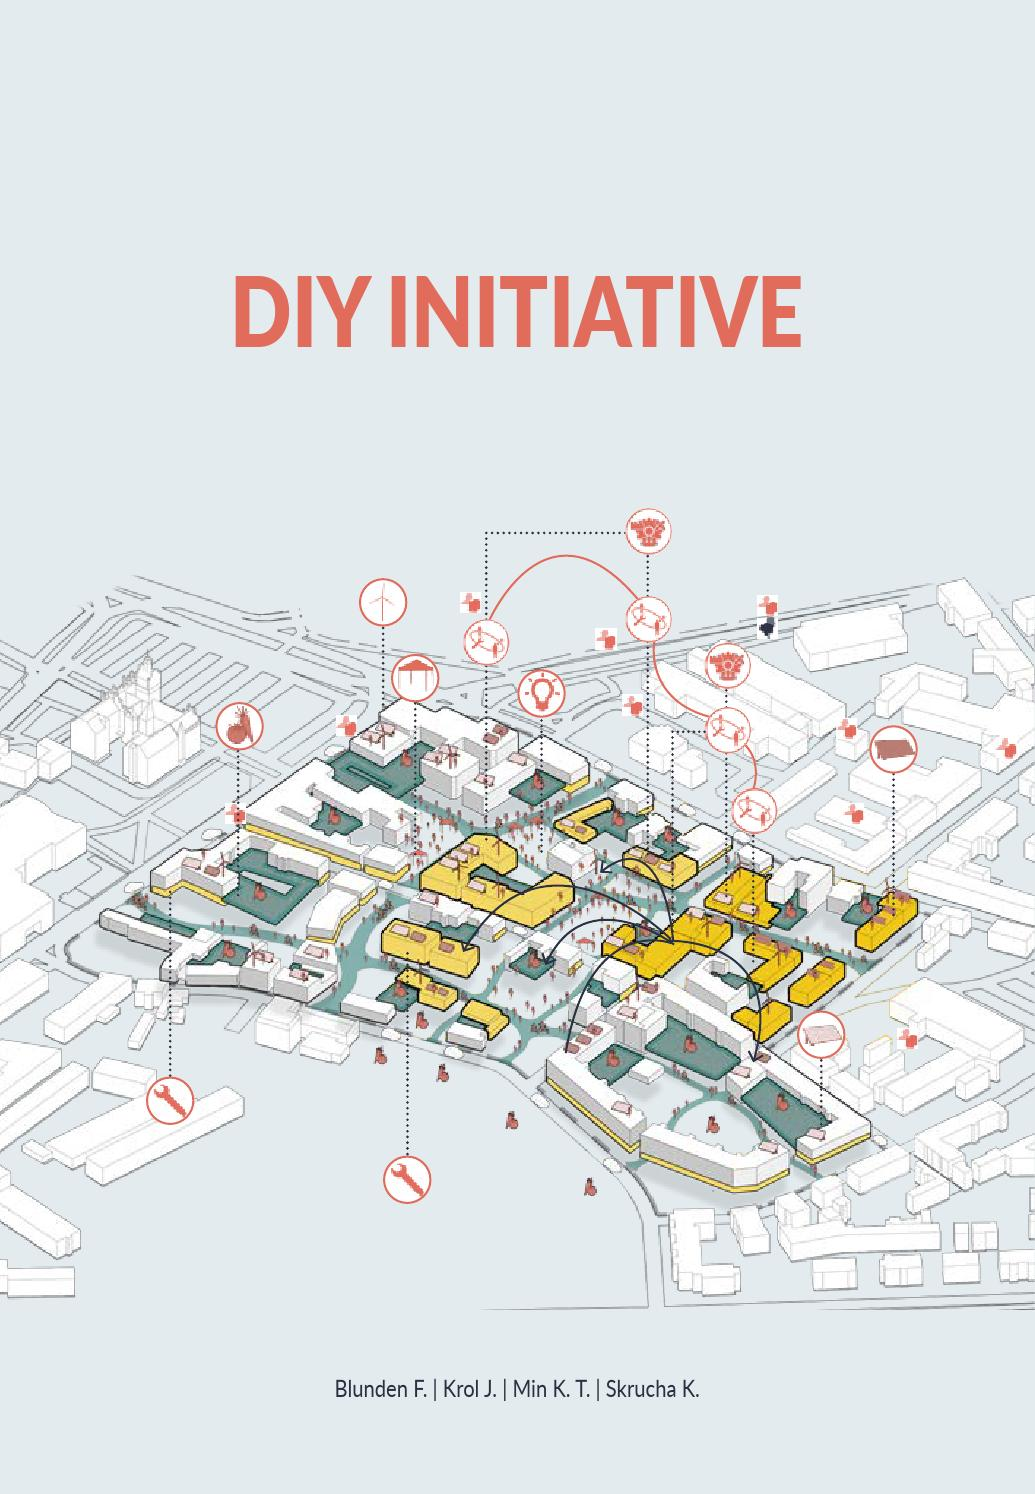 Urban Design Character Analysis : Diy initiative urban strategy december by plymouth